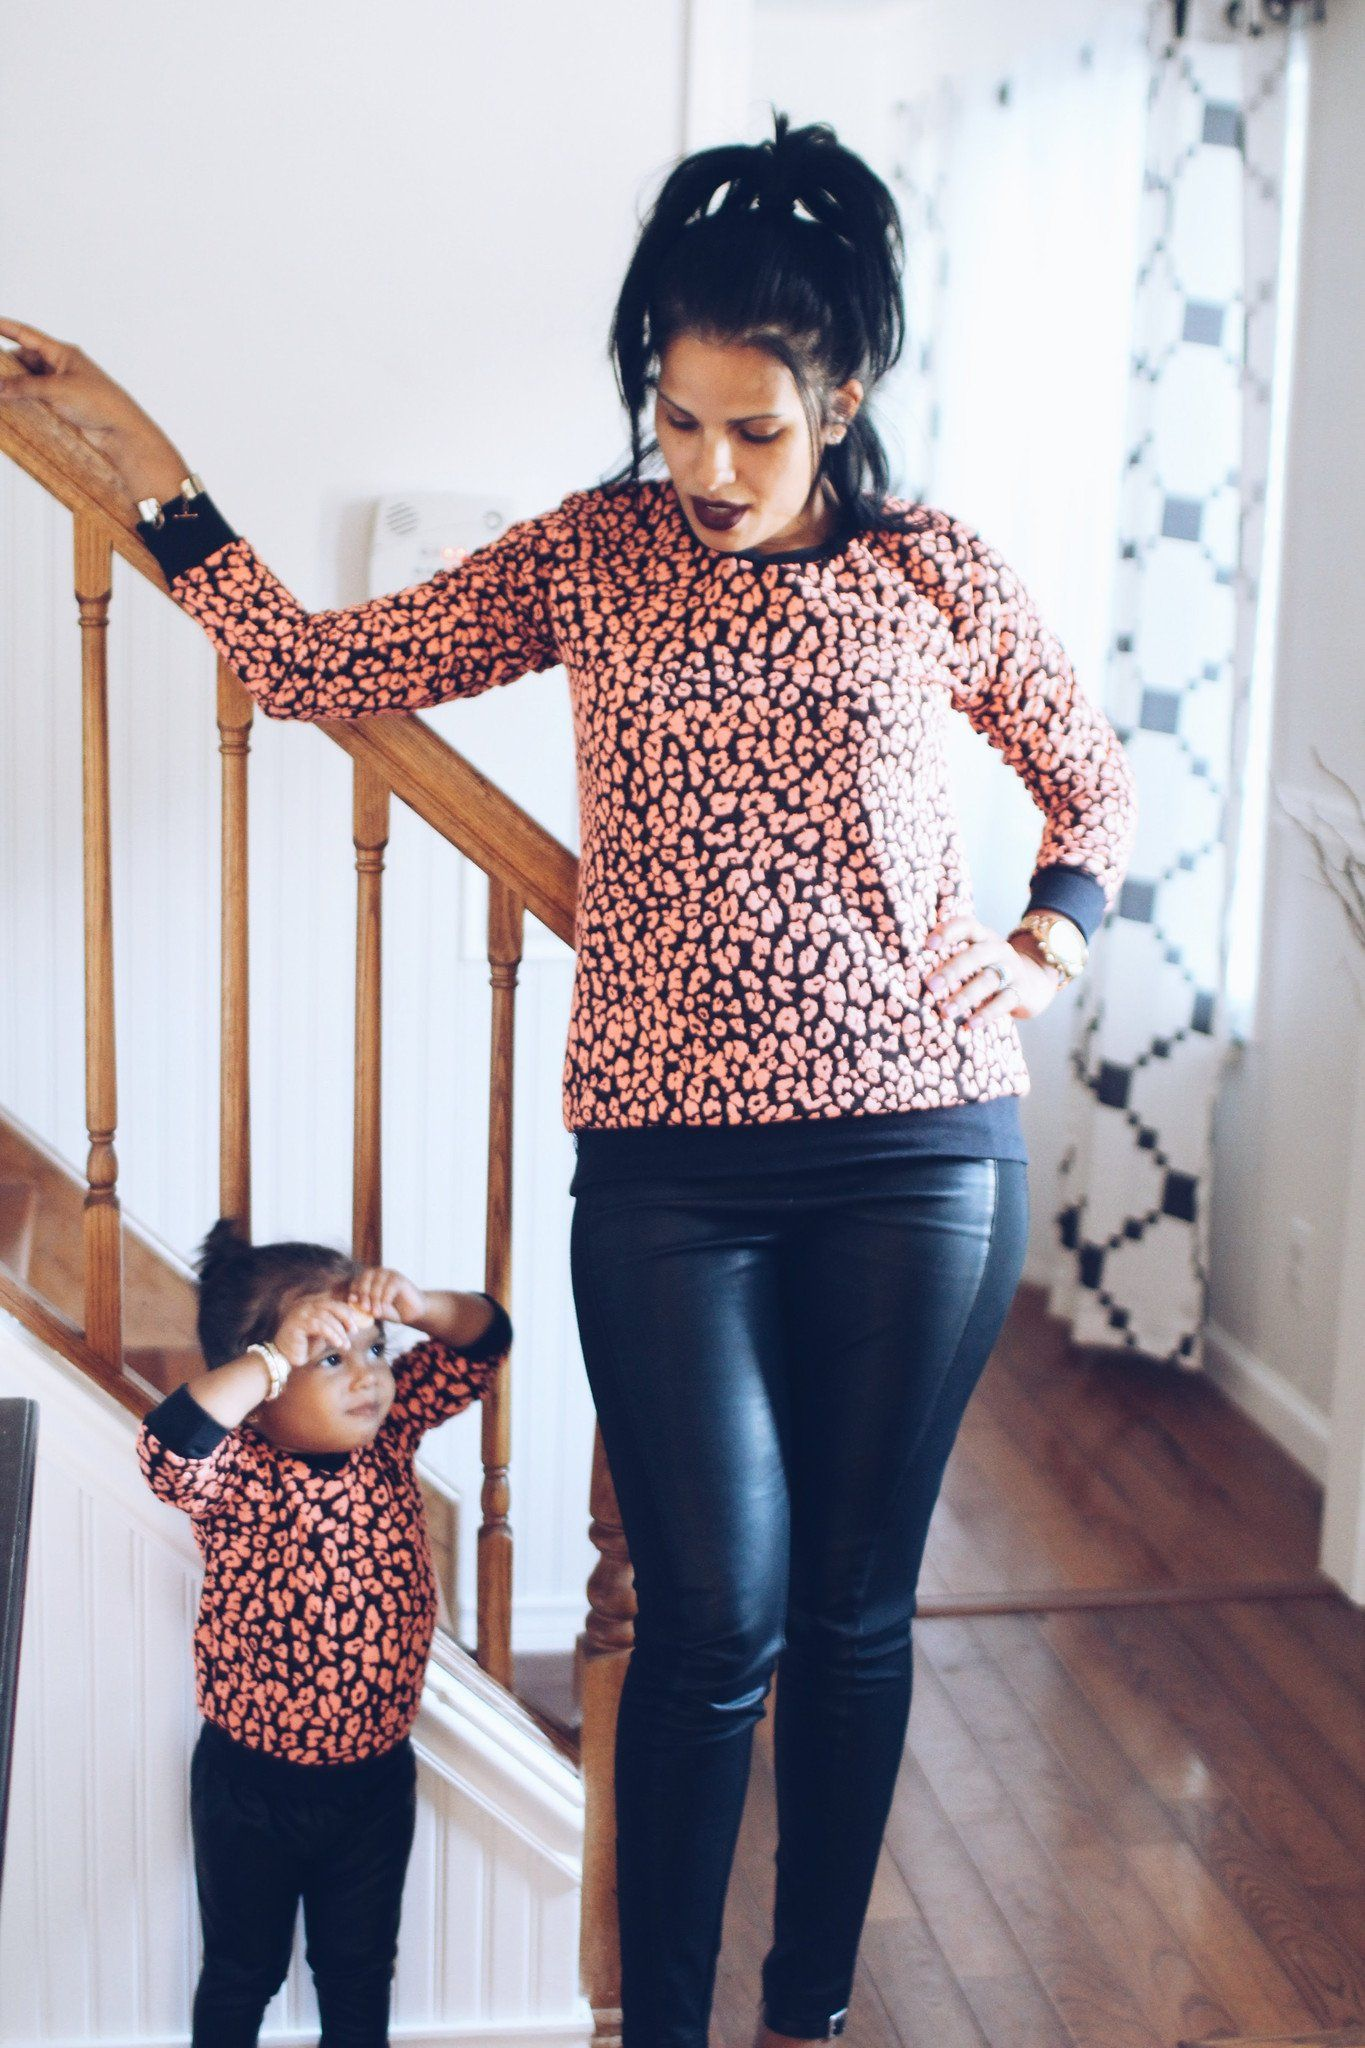 Sweater - Mommy And Me Matching Sweaters - Black And Coral Cheetah Print